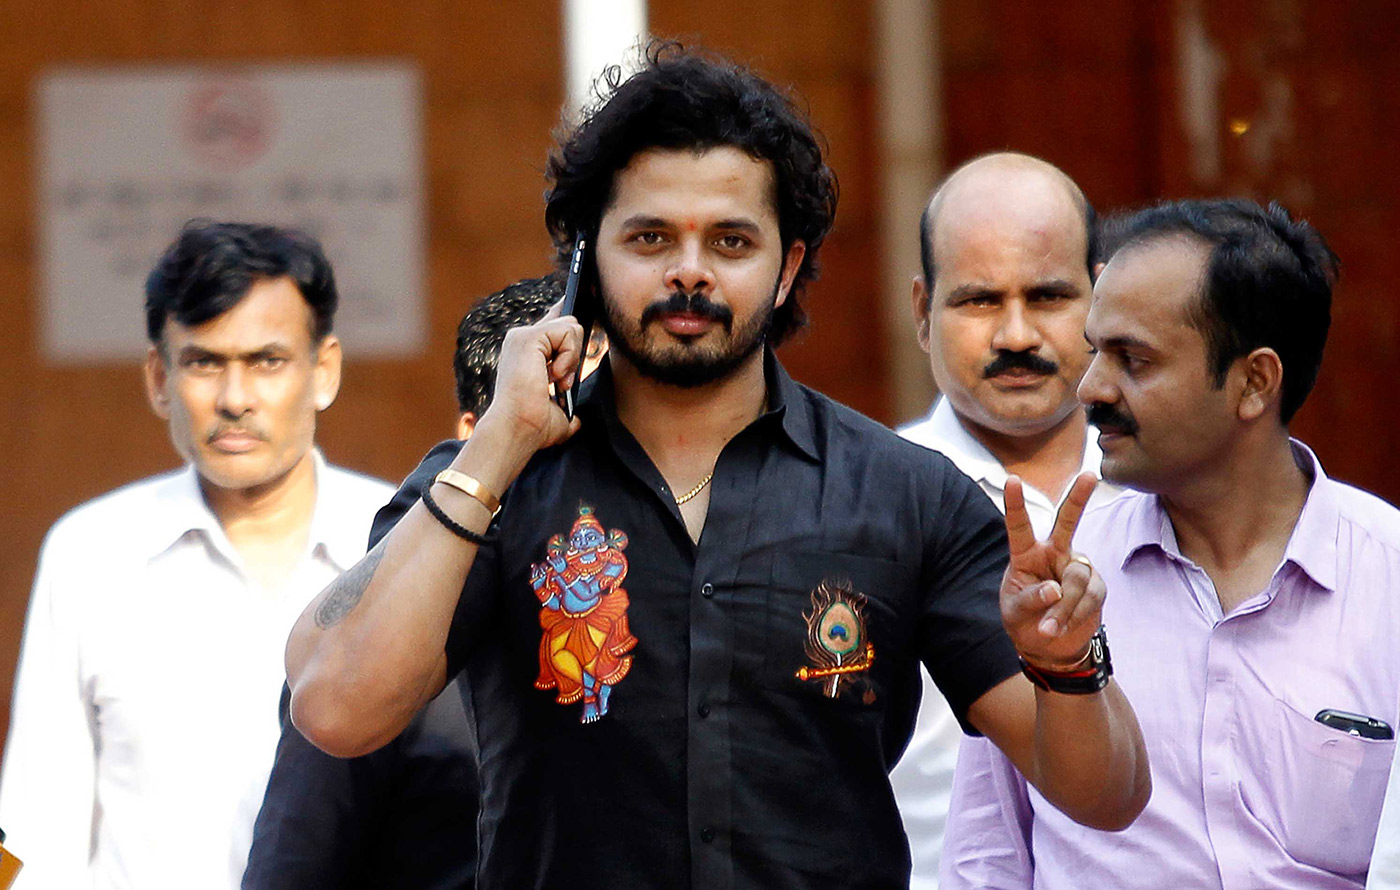 Sreesanth leaves the Patiala House court in Delhi in 2015 after charges against him were dropped